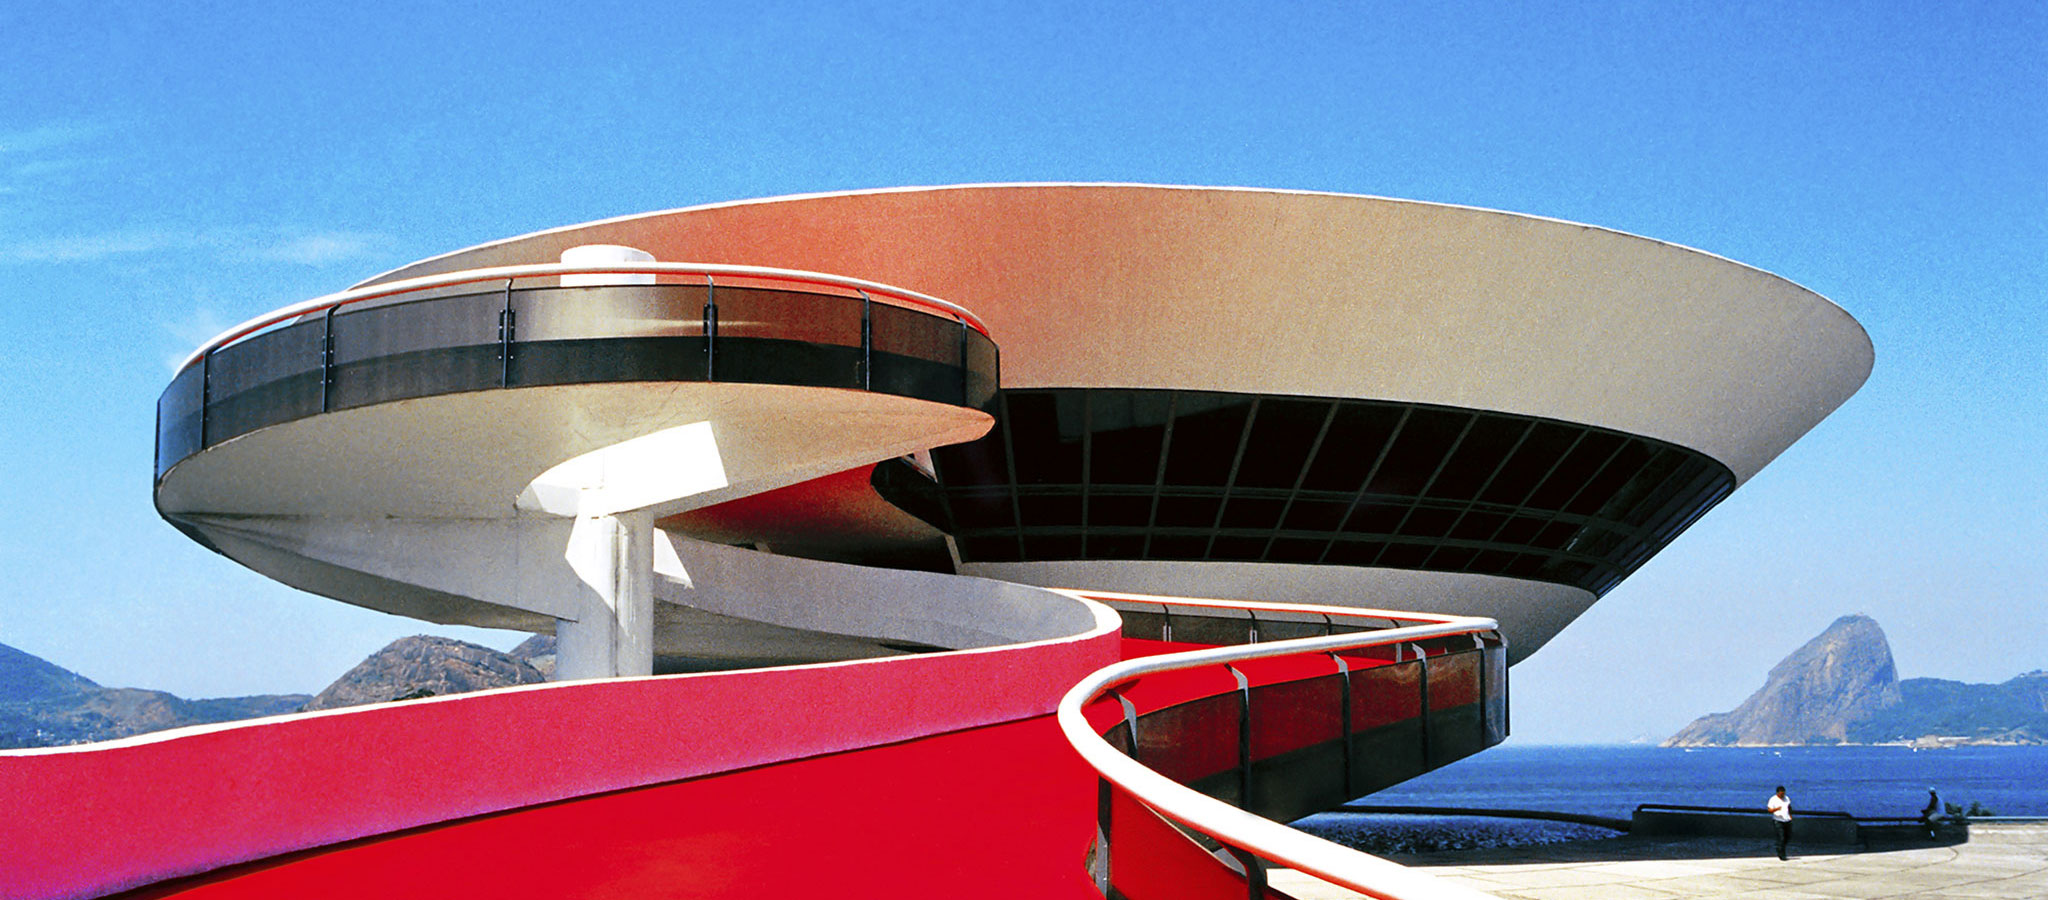 MAC Niteroi by Oscar Niemeyer. Photograph by © Marcela Grassi